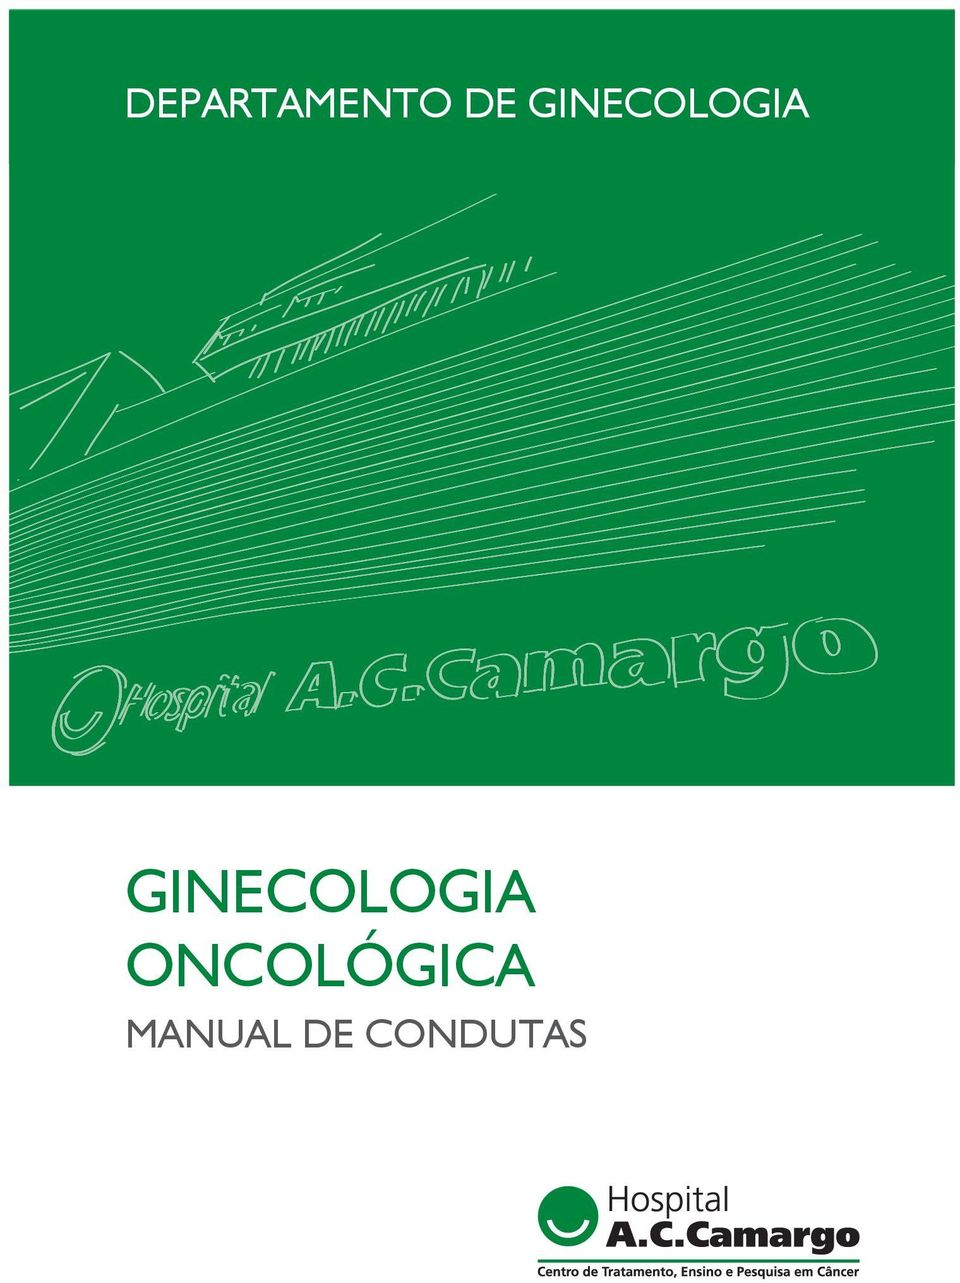 ONCOLÓGICA MANUAL